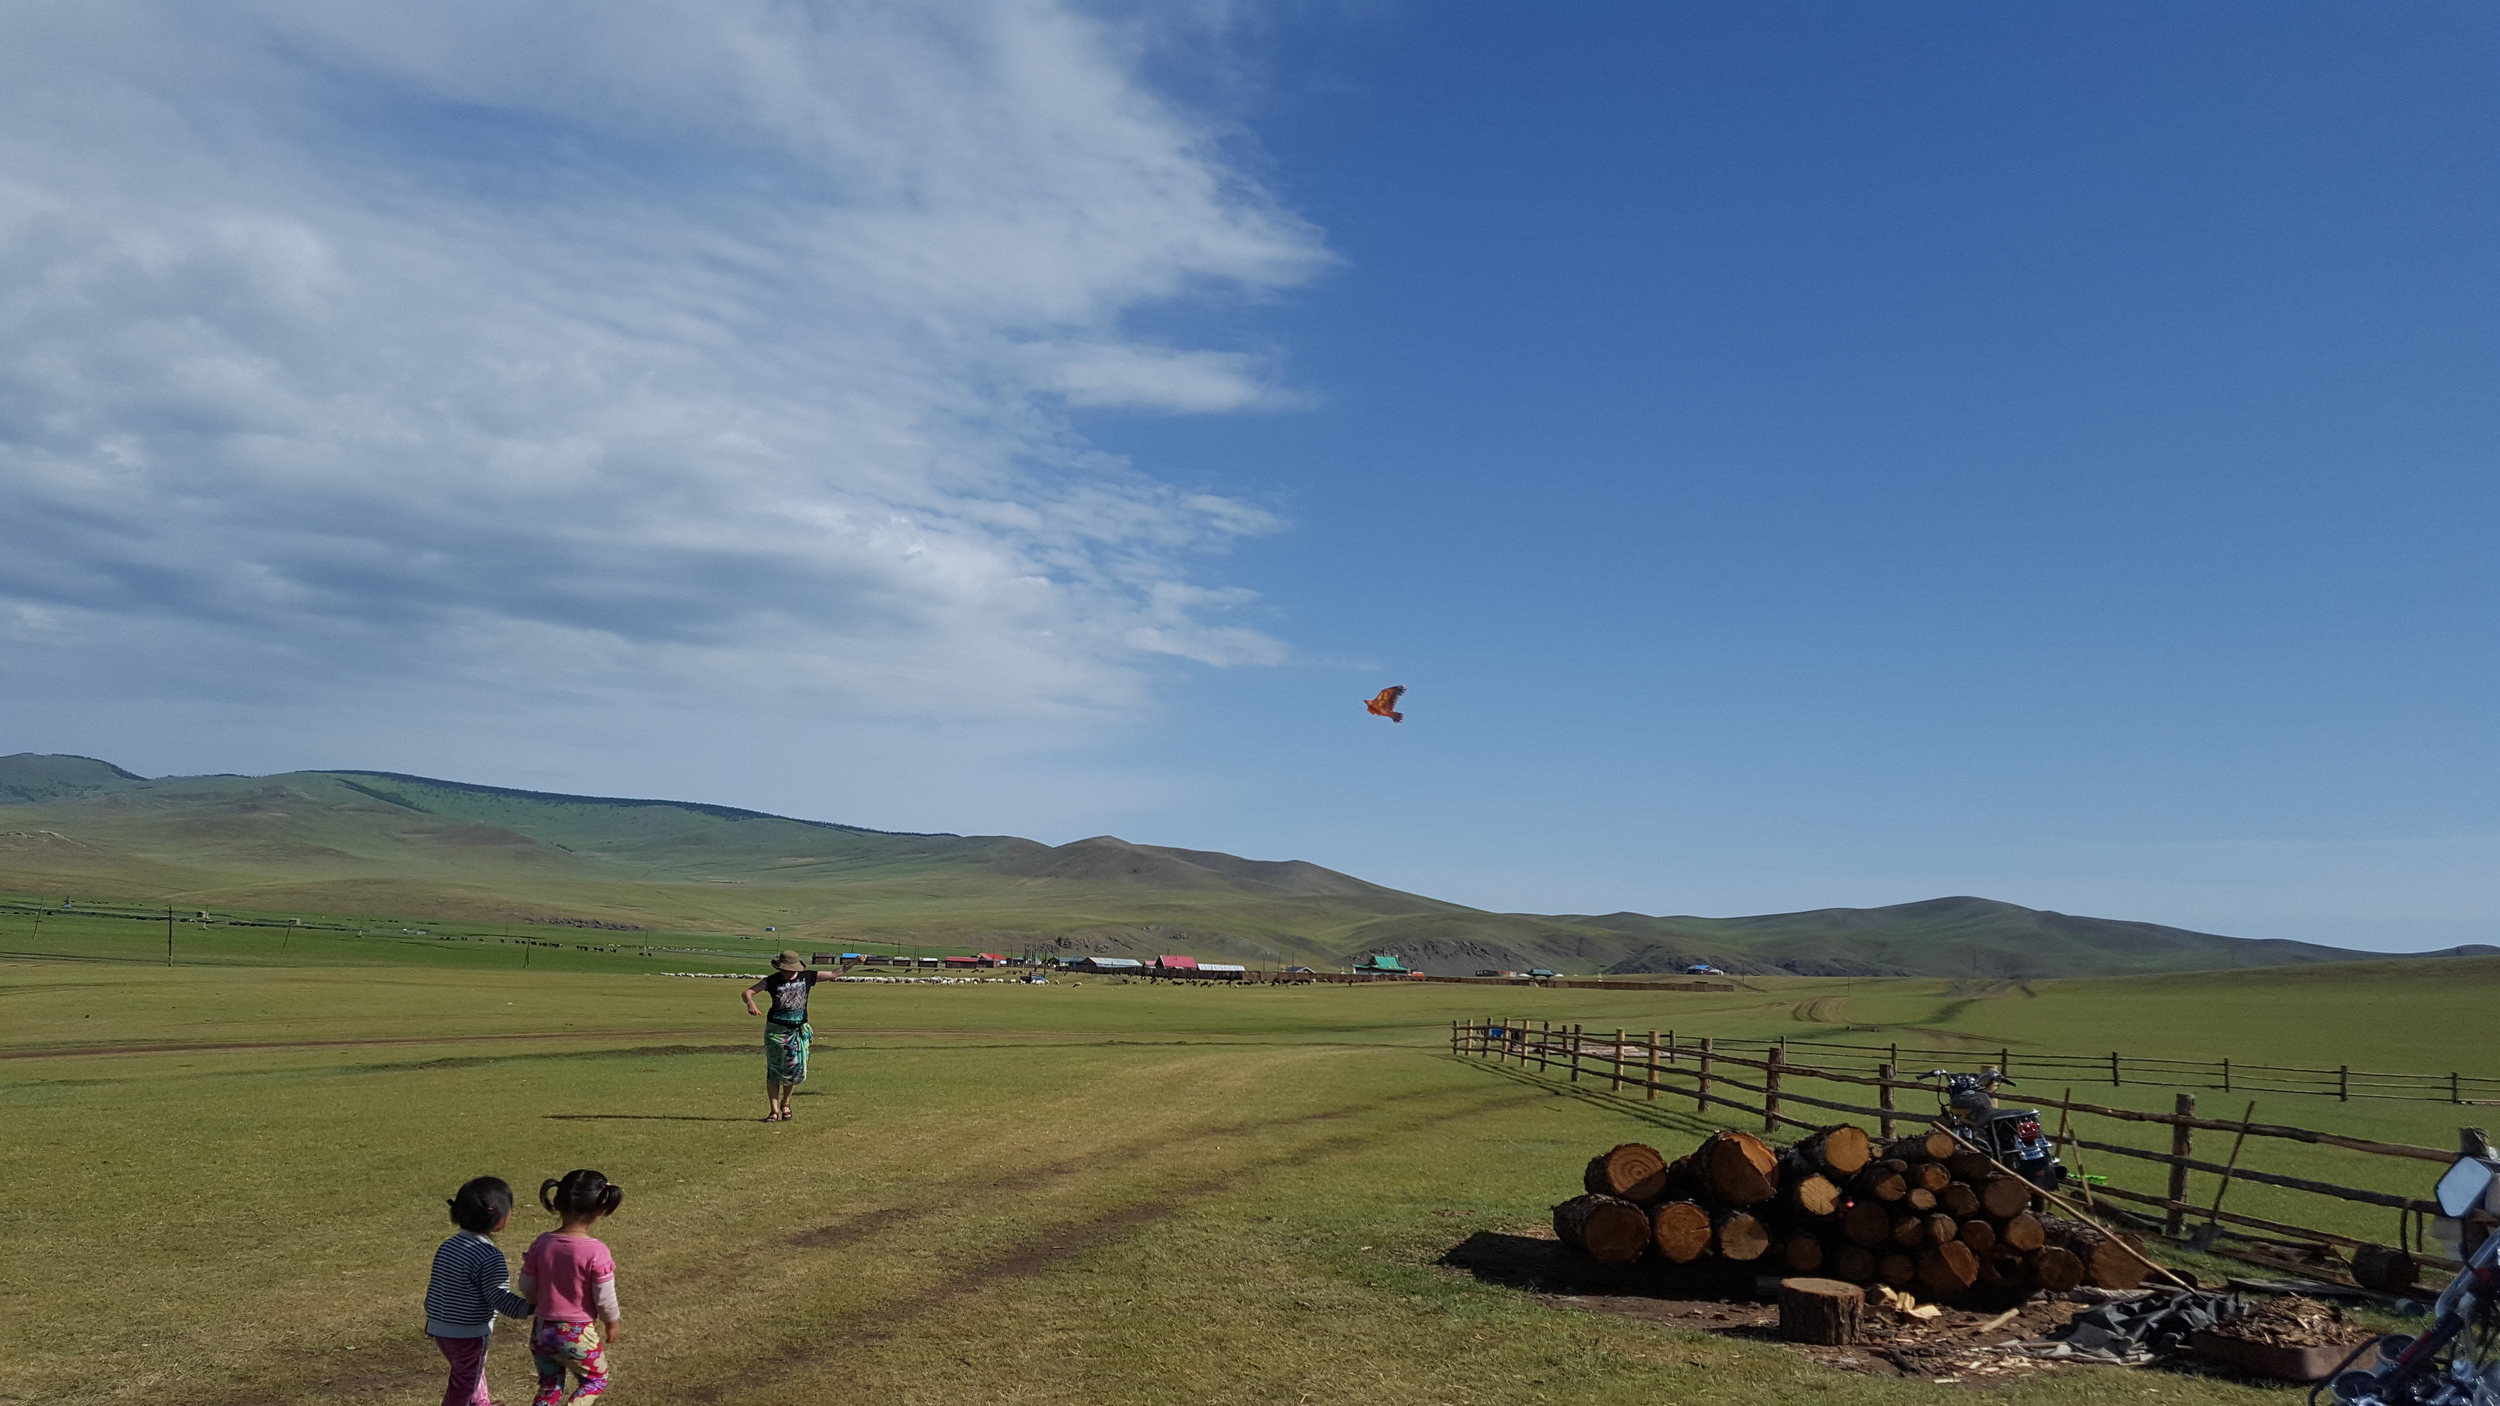 Flying a kite with the children